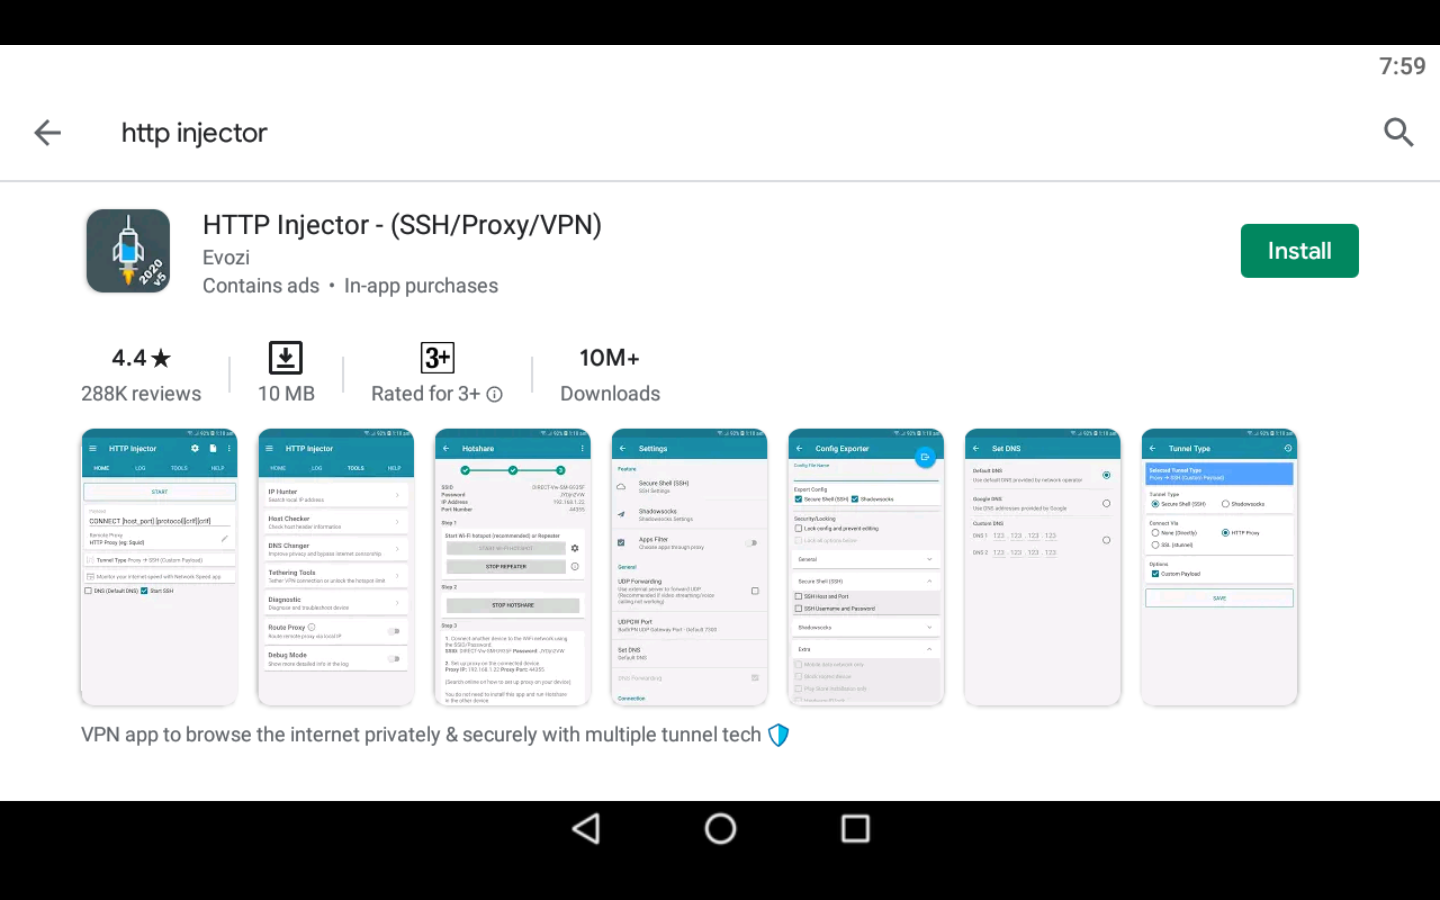 HTTP Injector app on PC